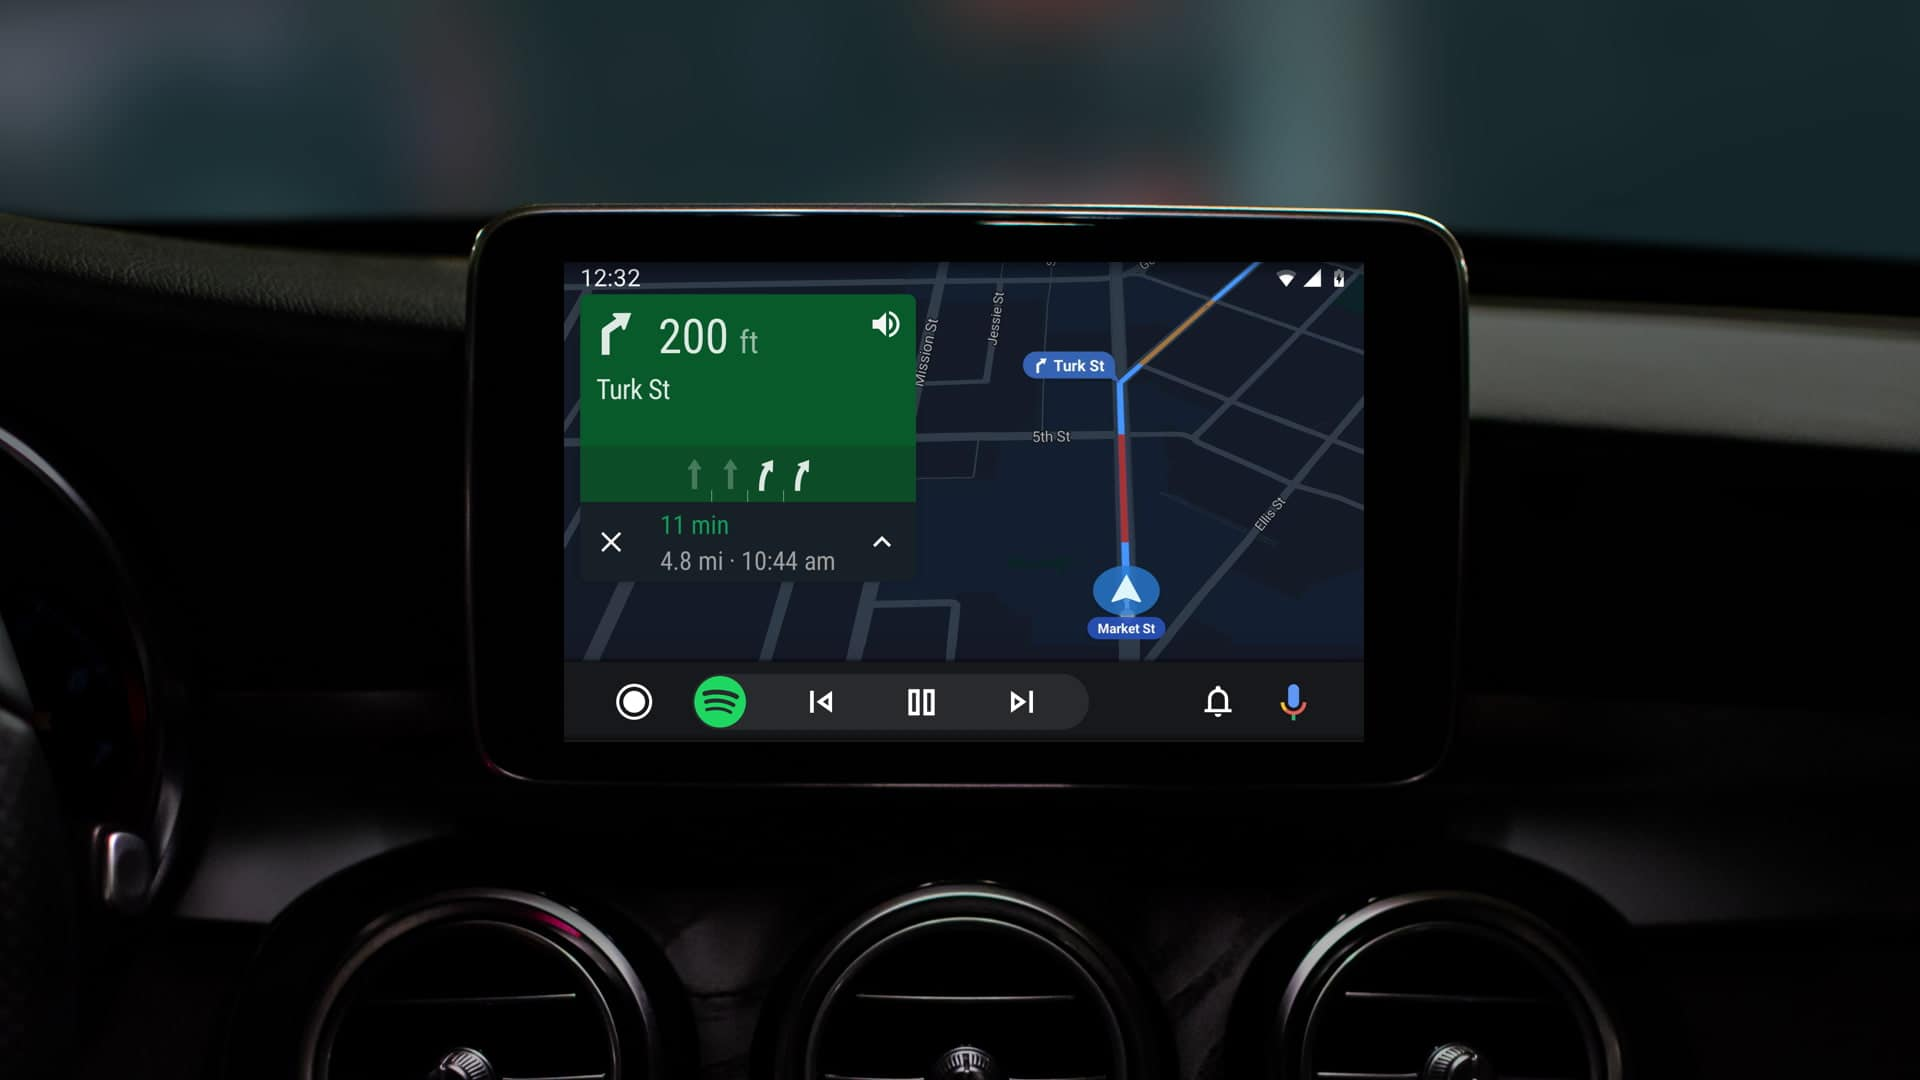 See turn by turn directions while controlling other apps on the same screen